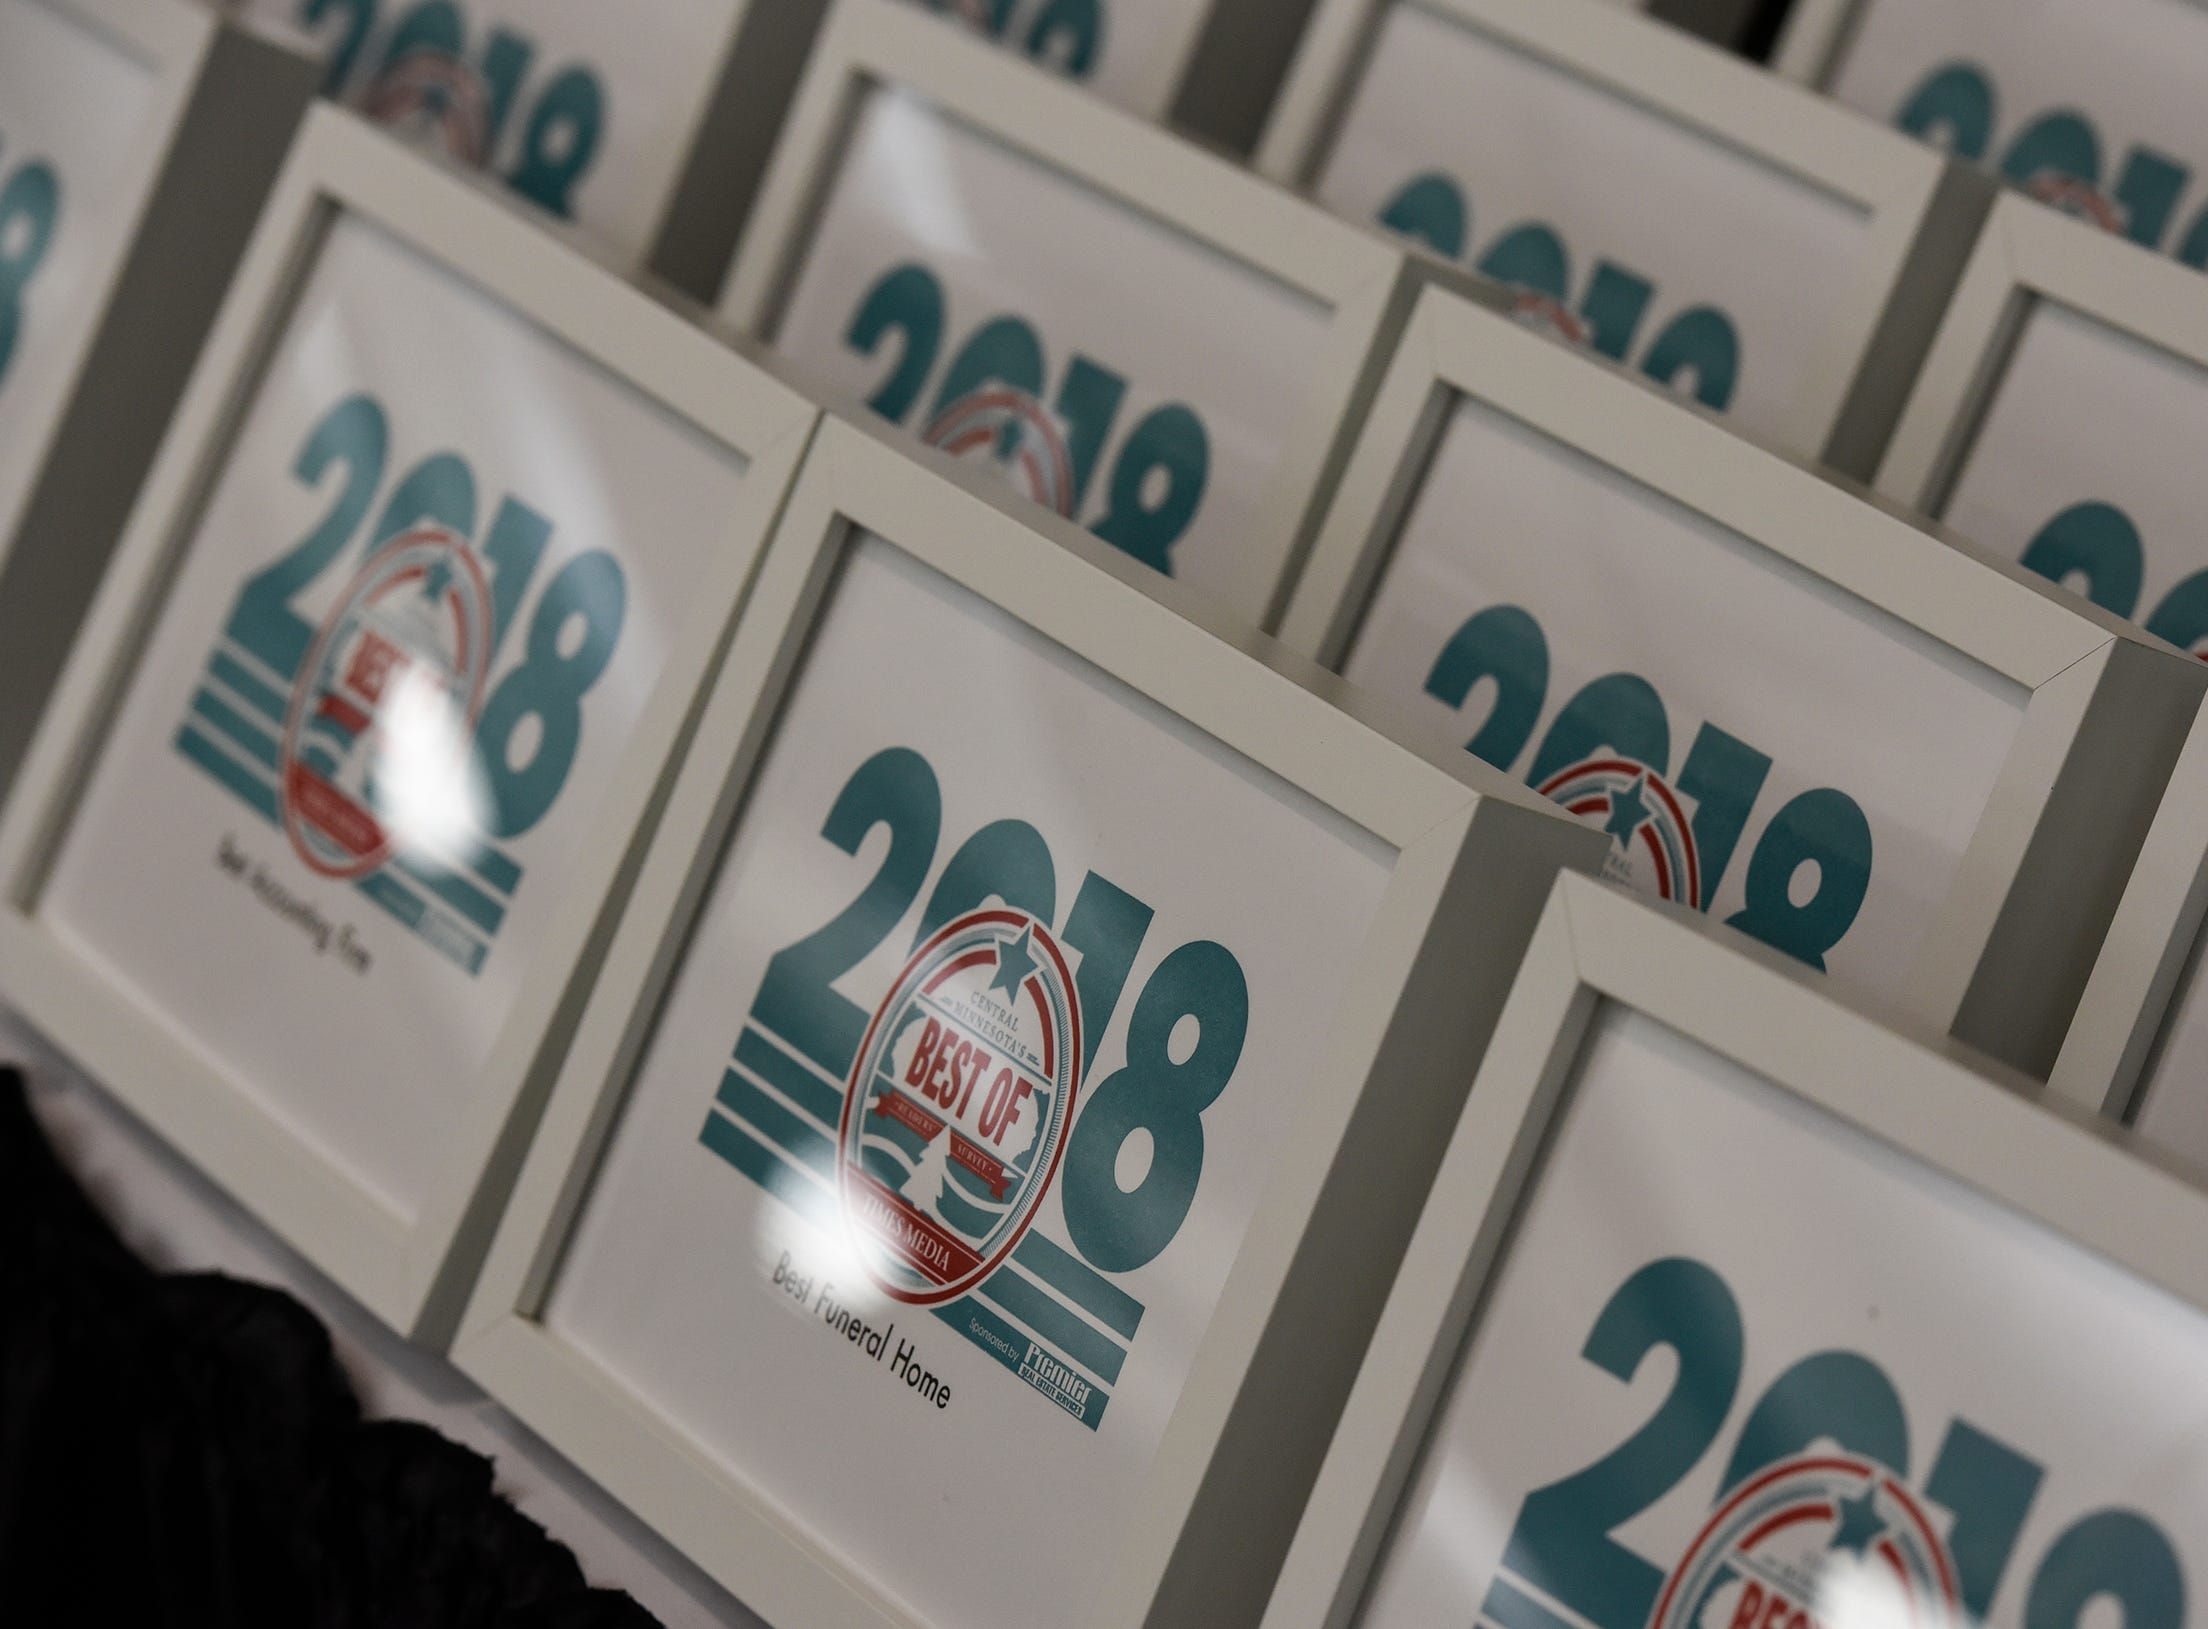 Awards are ready to be presented during the Best of Central Minnesota awards ceremony Thursday, Sept. 13, in St. Joseph.